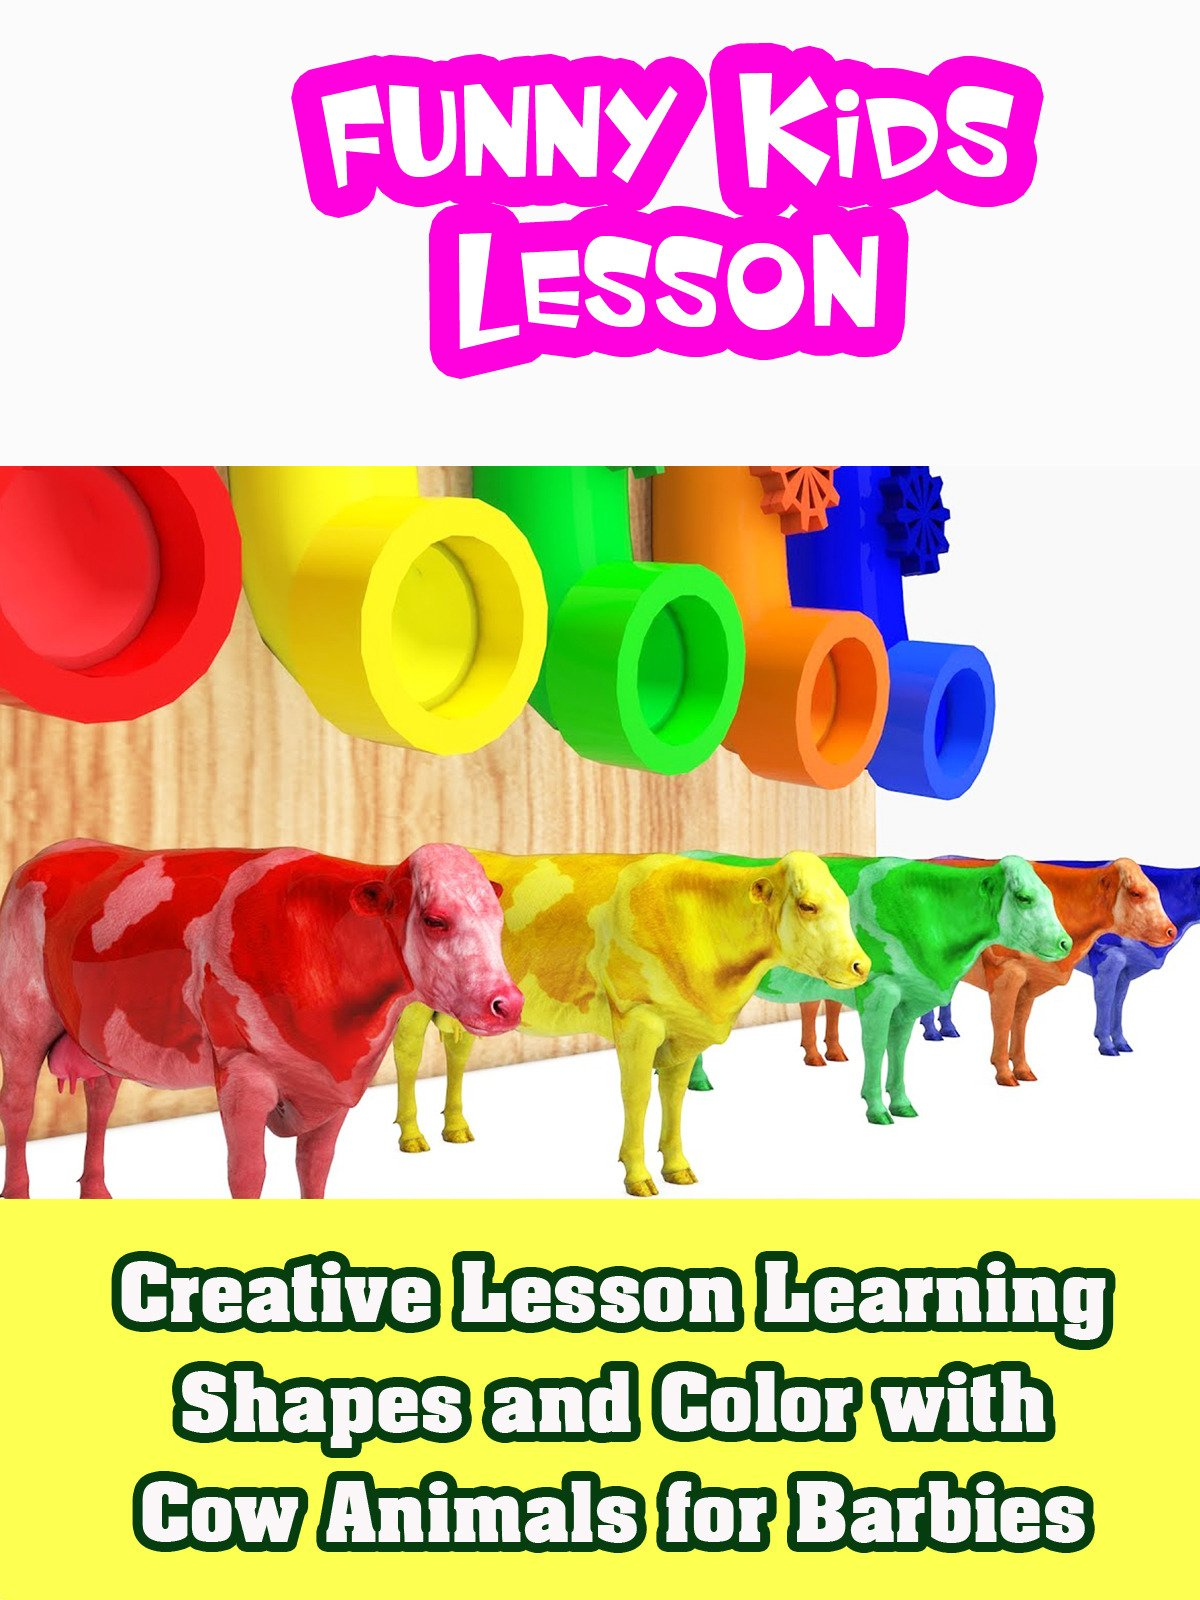 Creative Lesson Learning Shapes and Color with Cow Animals for Barbies